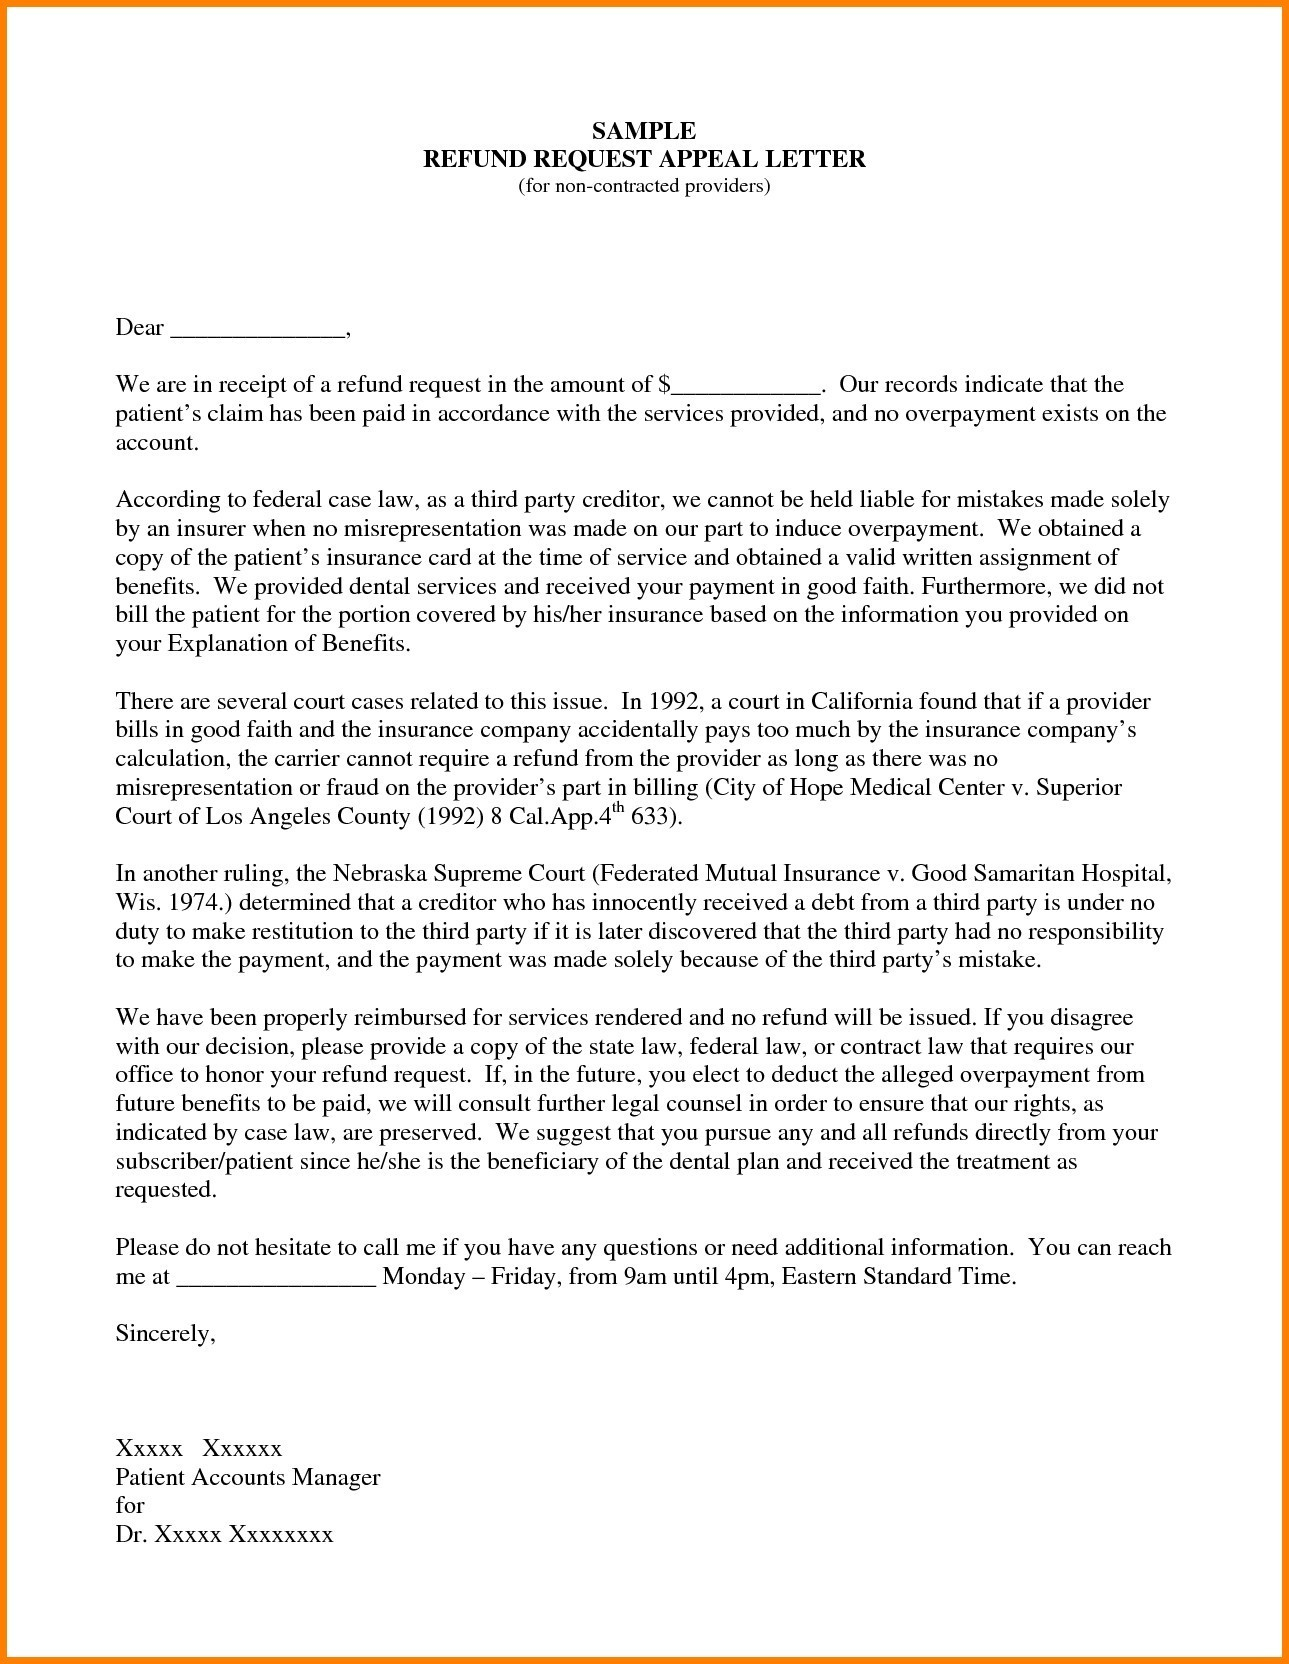 Letter to Judge Template Traffic Violation - How to Write A Mitigation Letter for Speeding Ticket Choice Image